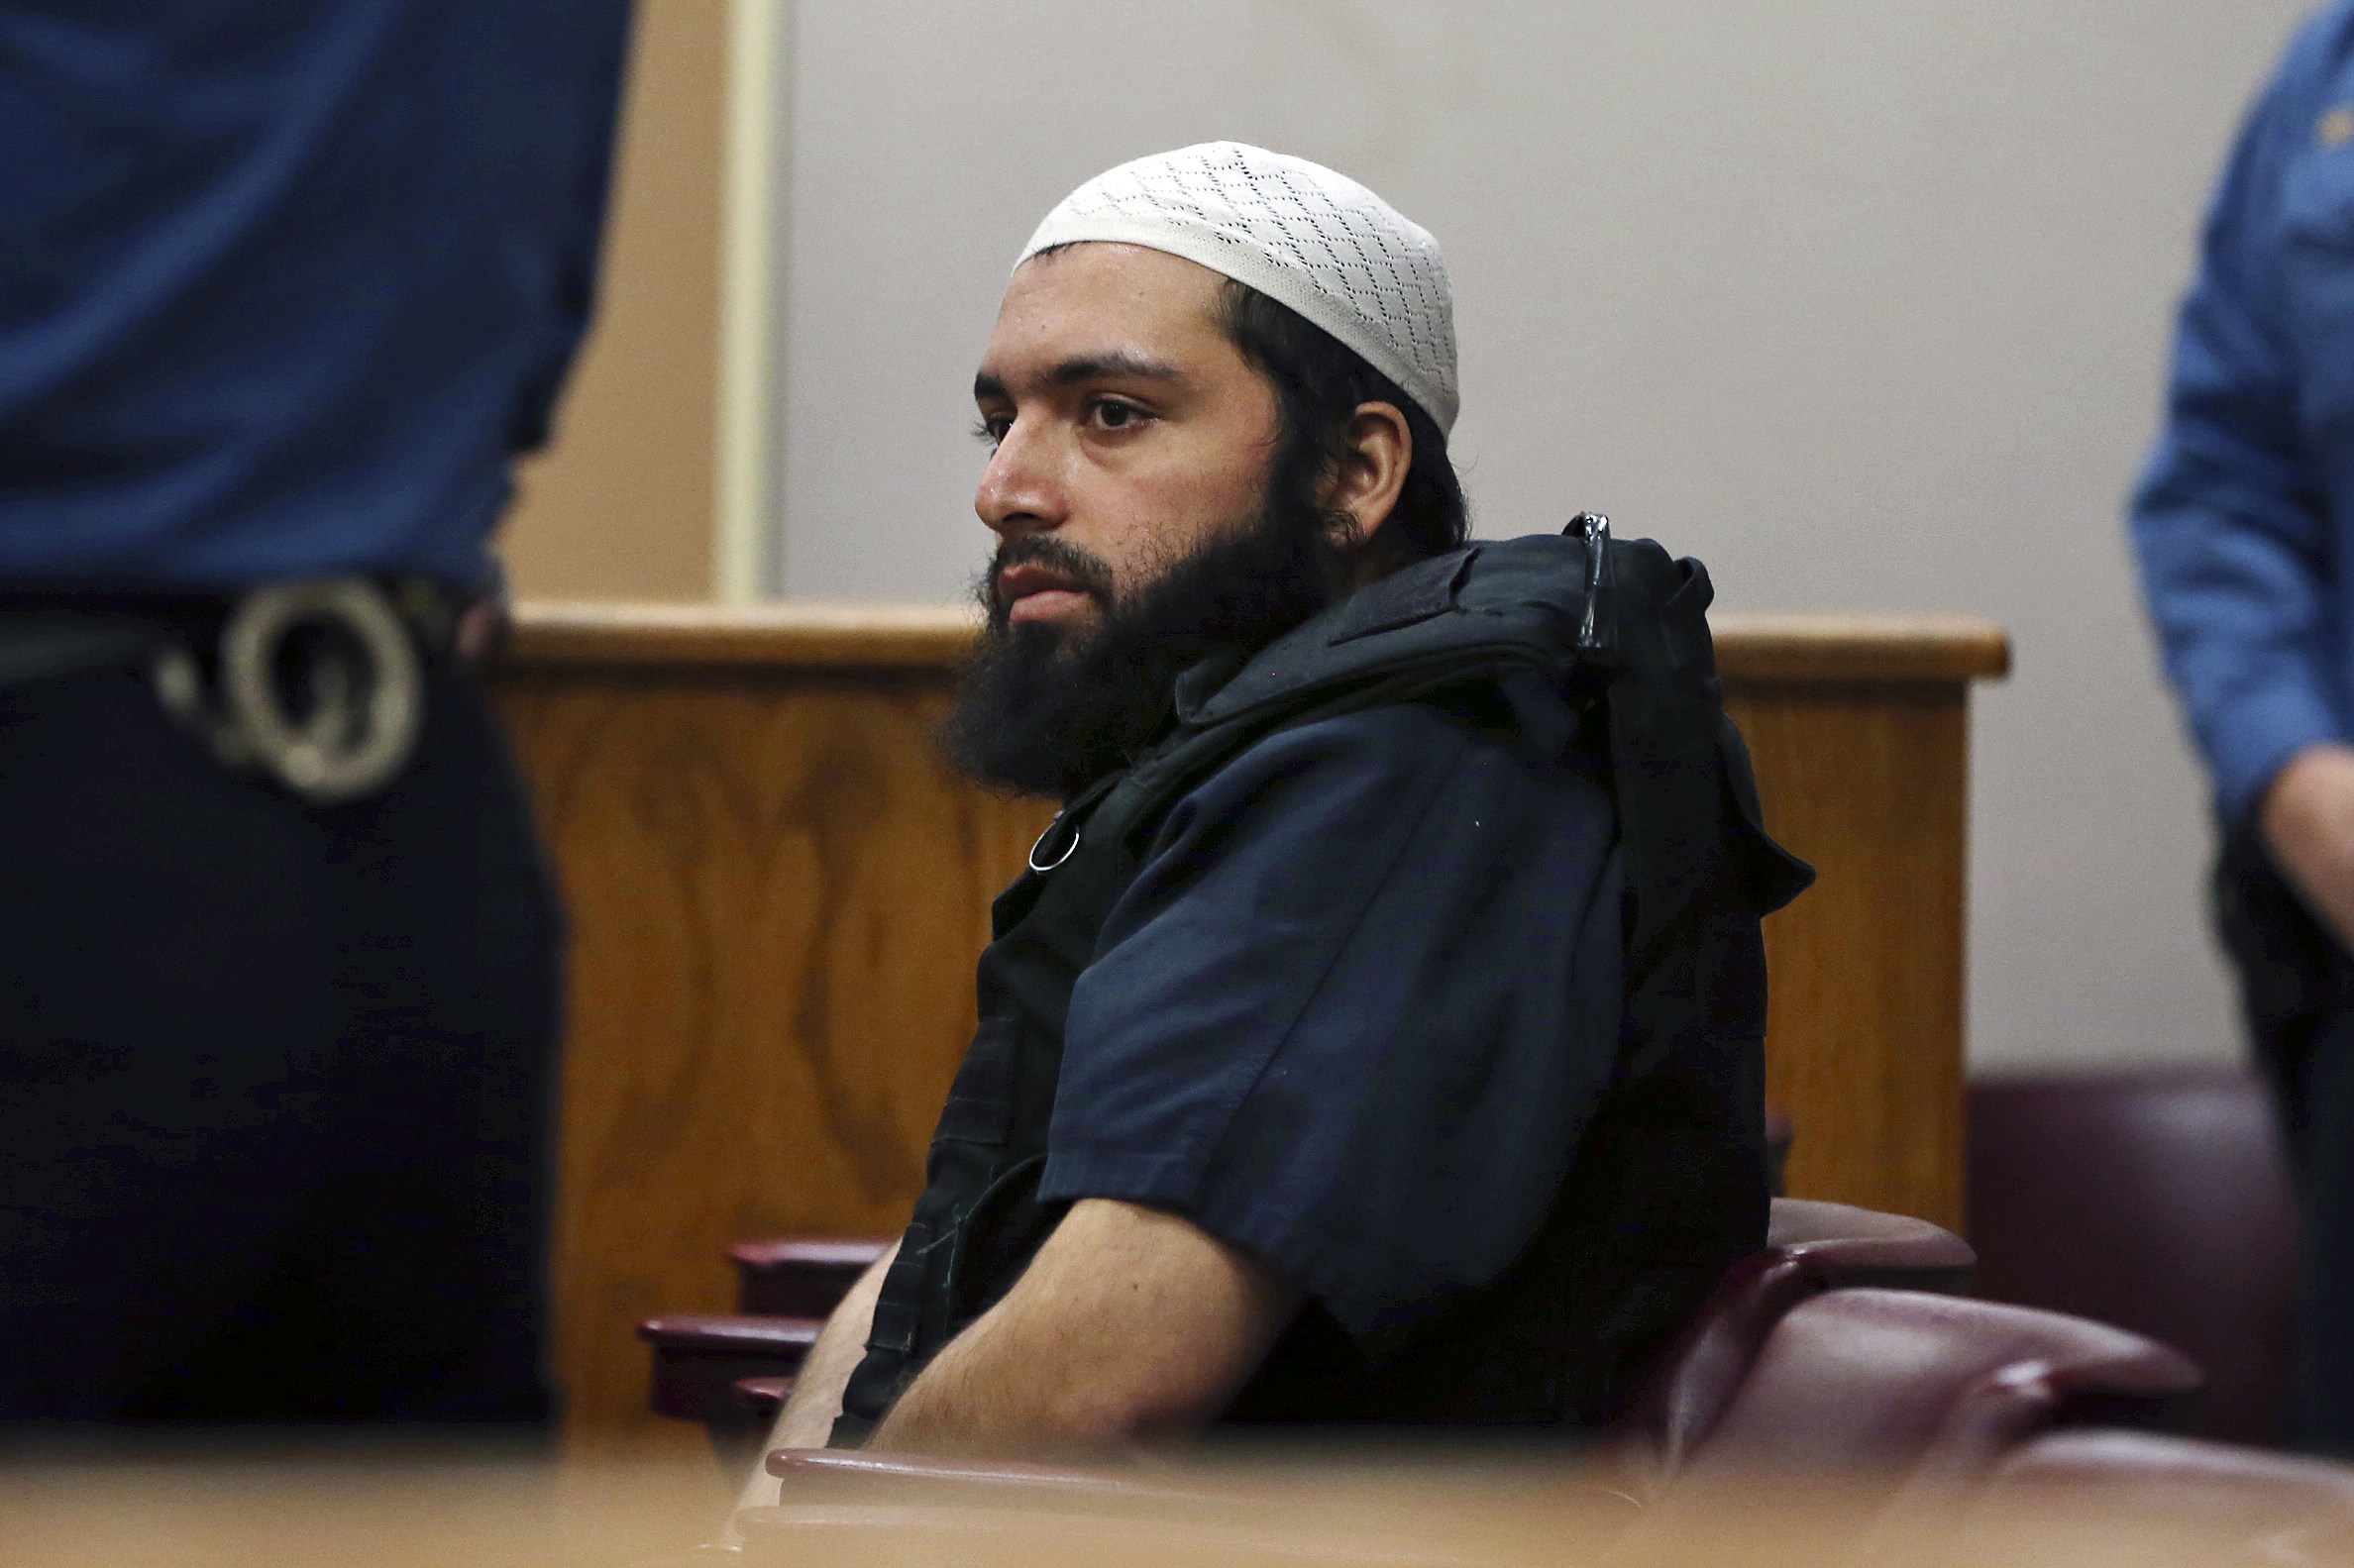 Guilty … again: Jury convicts terrorist in shootout with Linden cops